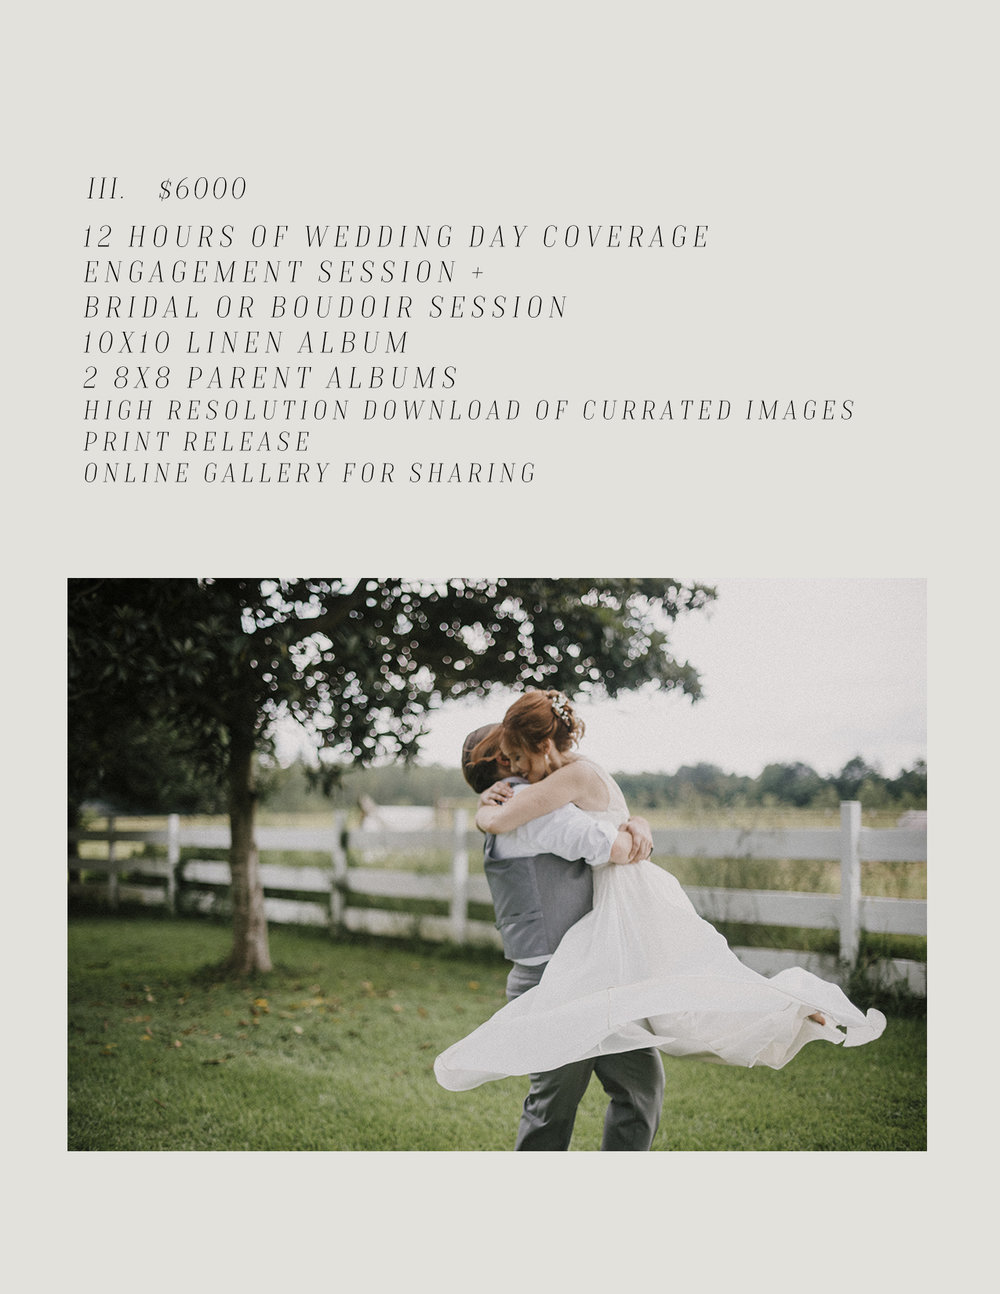 WeddingGuide7.jpg